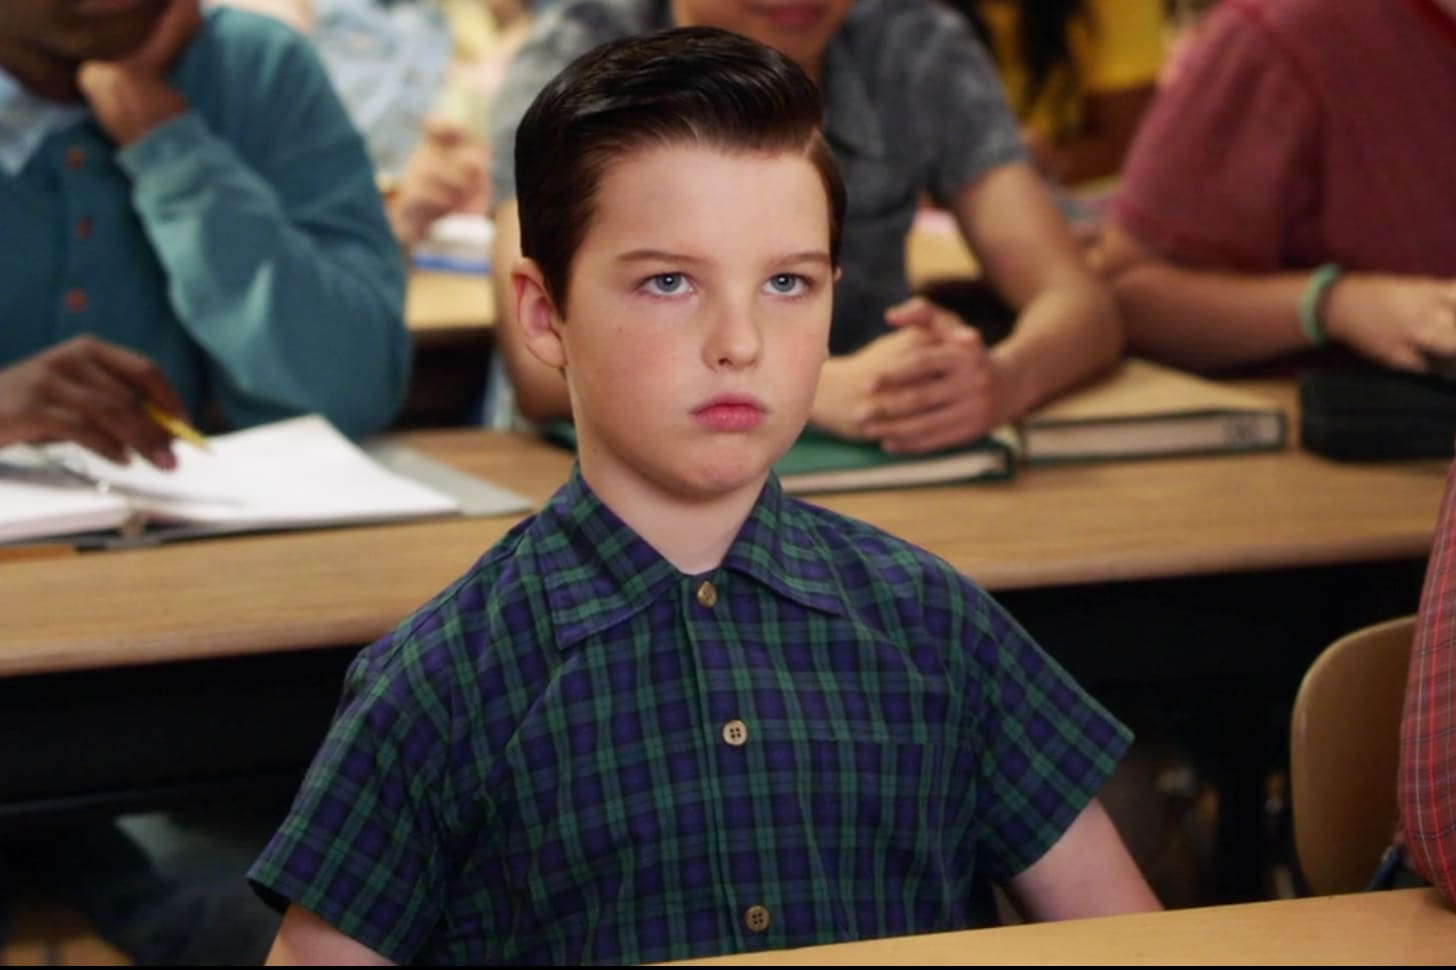 CBS' 'Young Sheldon' faces fine for misuse of emergency alert tone